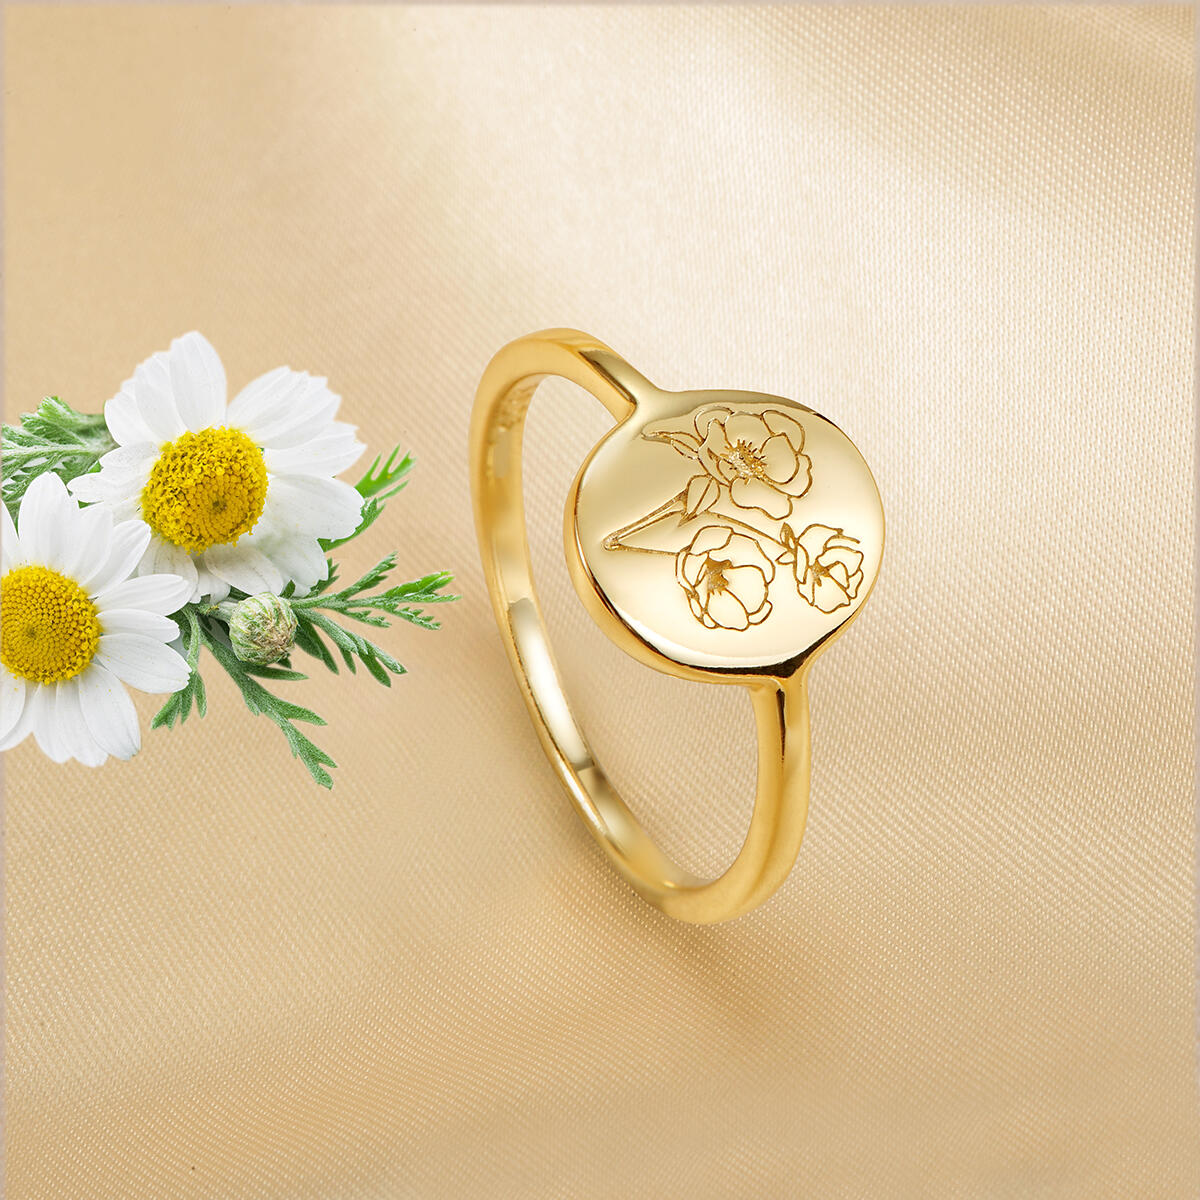 Handmade Poppy Flower Signet Ring -18K Gold Over 925 Sterling Silver Ring-Minimalistic Statement Ring with Botanical Engraved- Delicate Jewelry Gift for Women/Girls